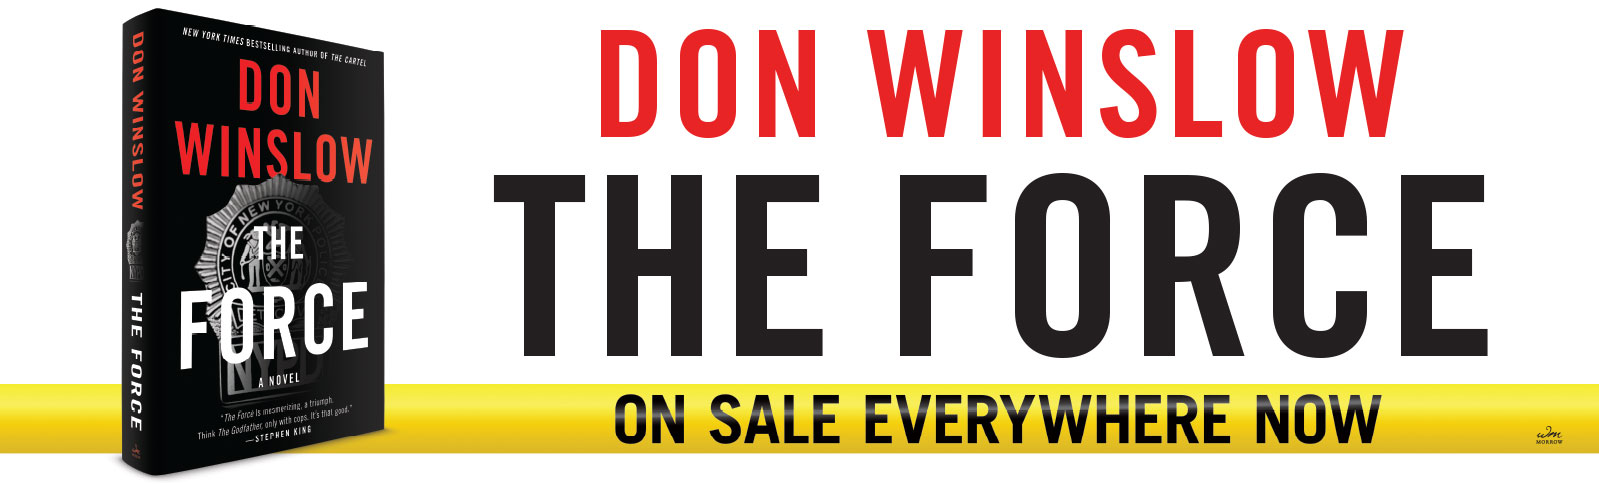 Don Winslow - The Force - W4th Station Poster